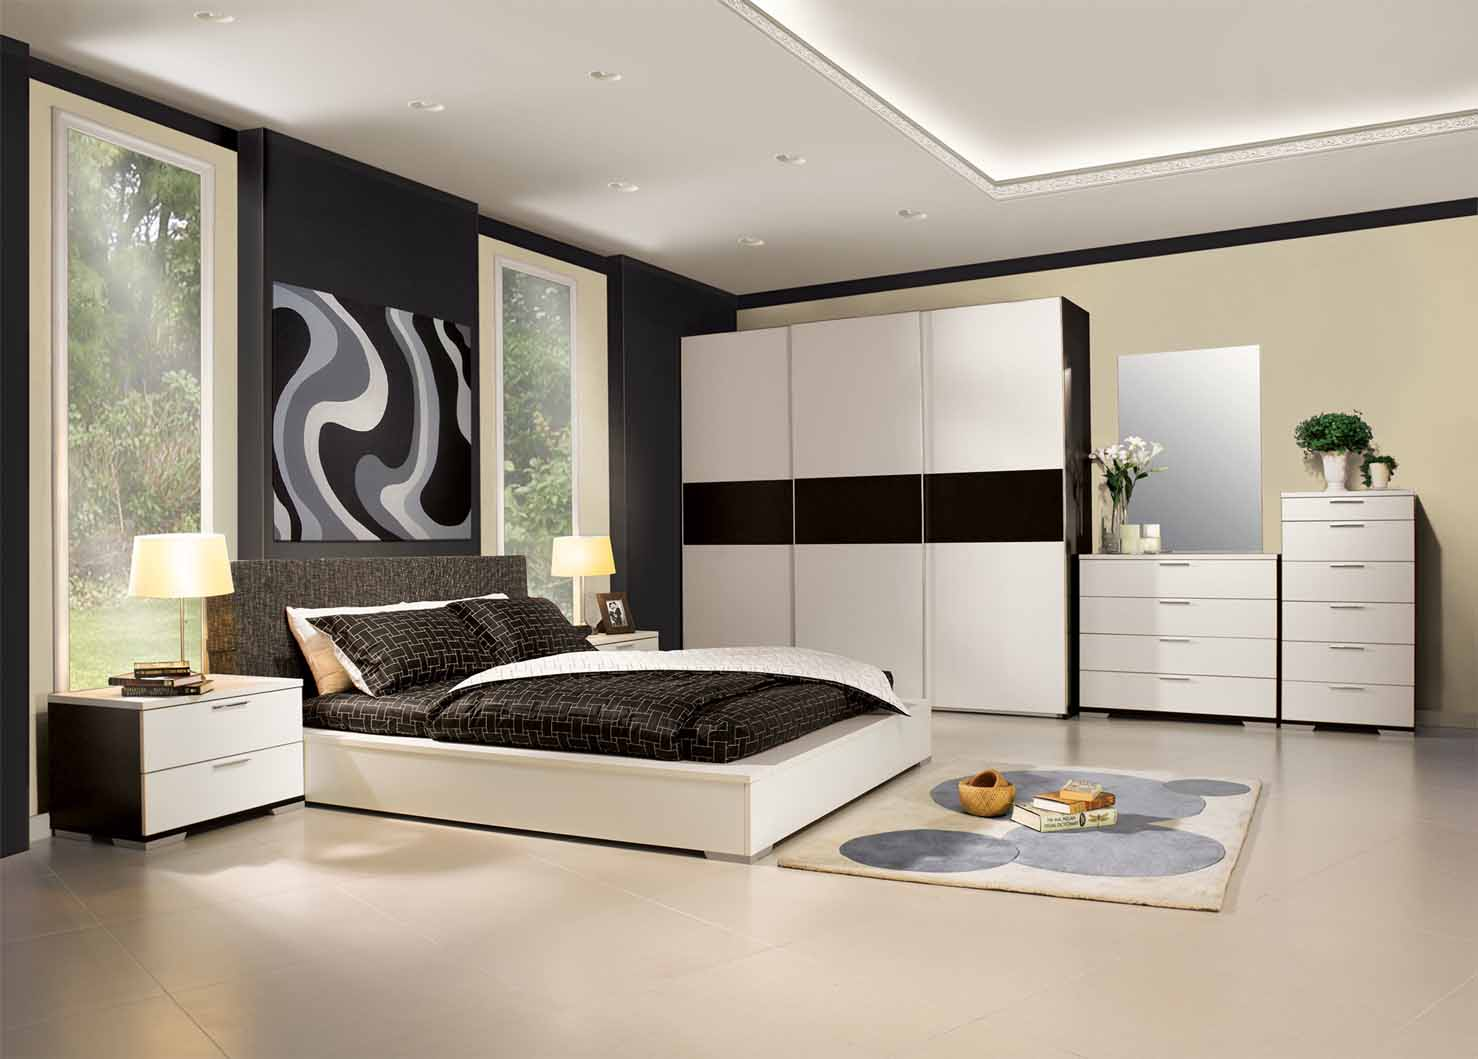 Modern bedroom design fouadtalal for Bedroom designs ideas modern